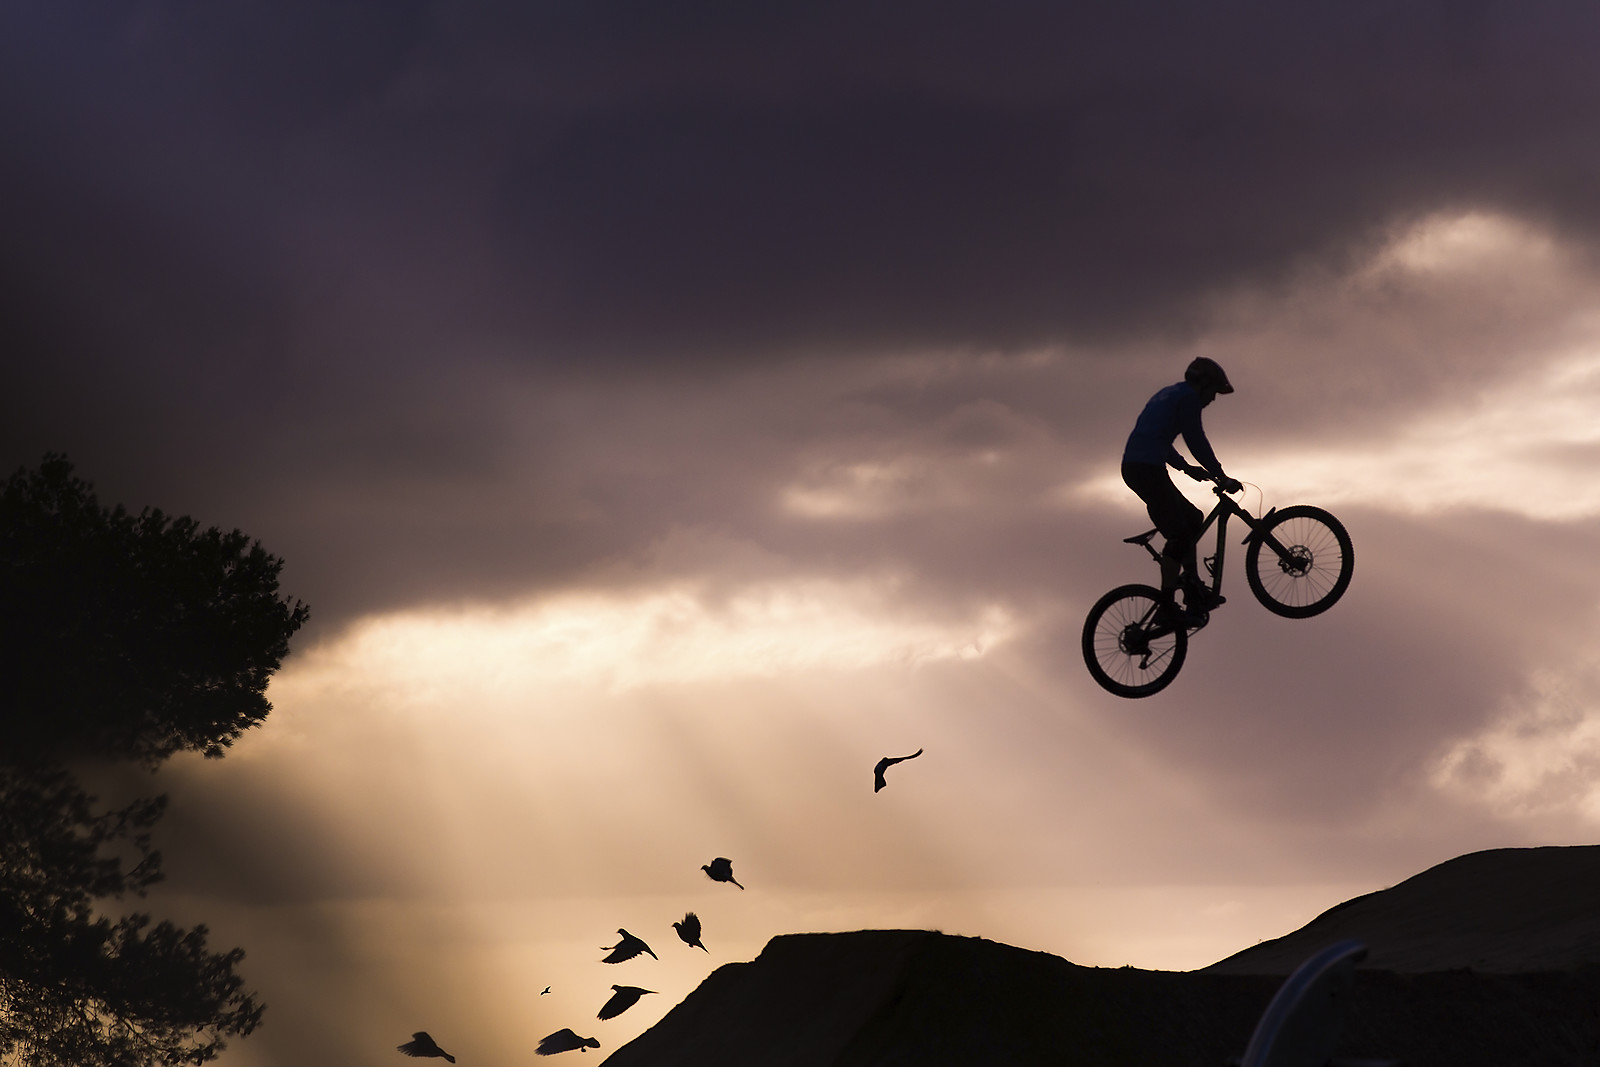 Doves flying in sunrise - Brynjulfmedstaven - Mountain Biking Pictures - Vital MTB